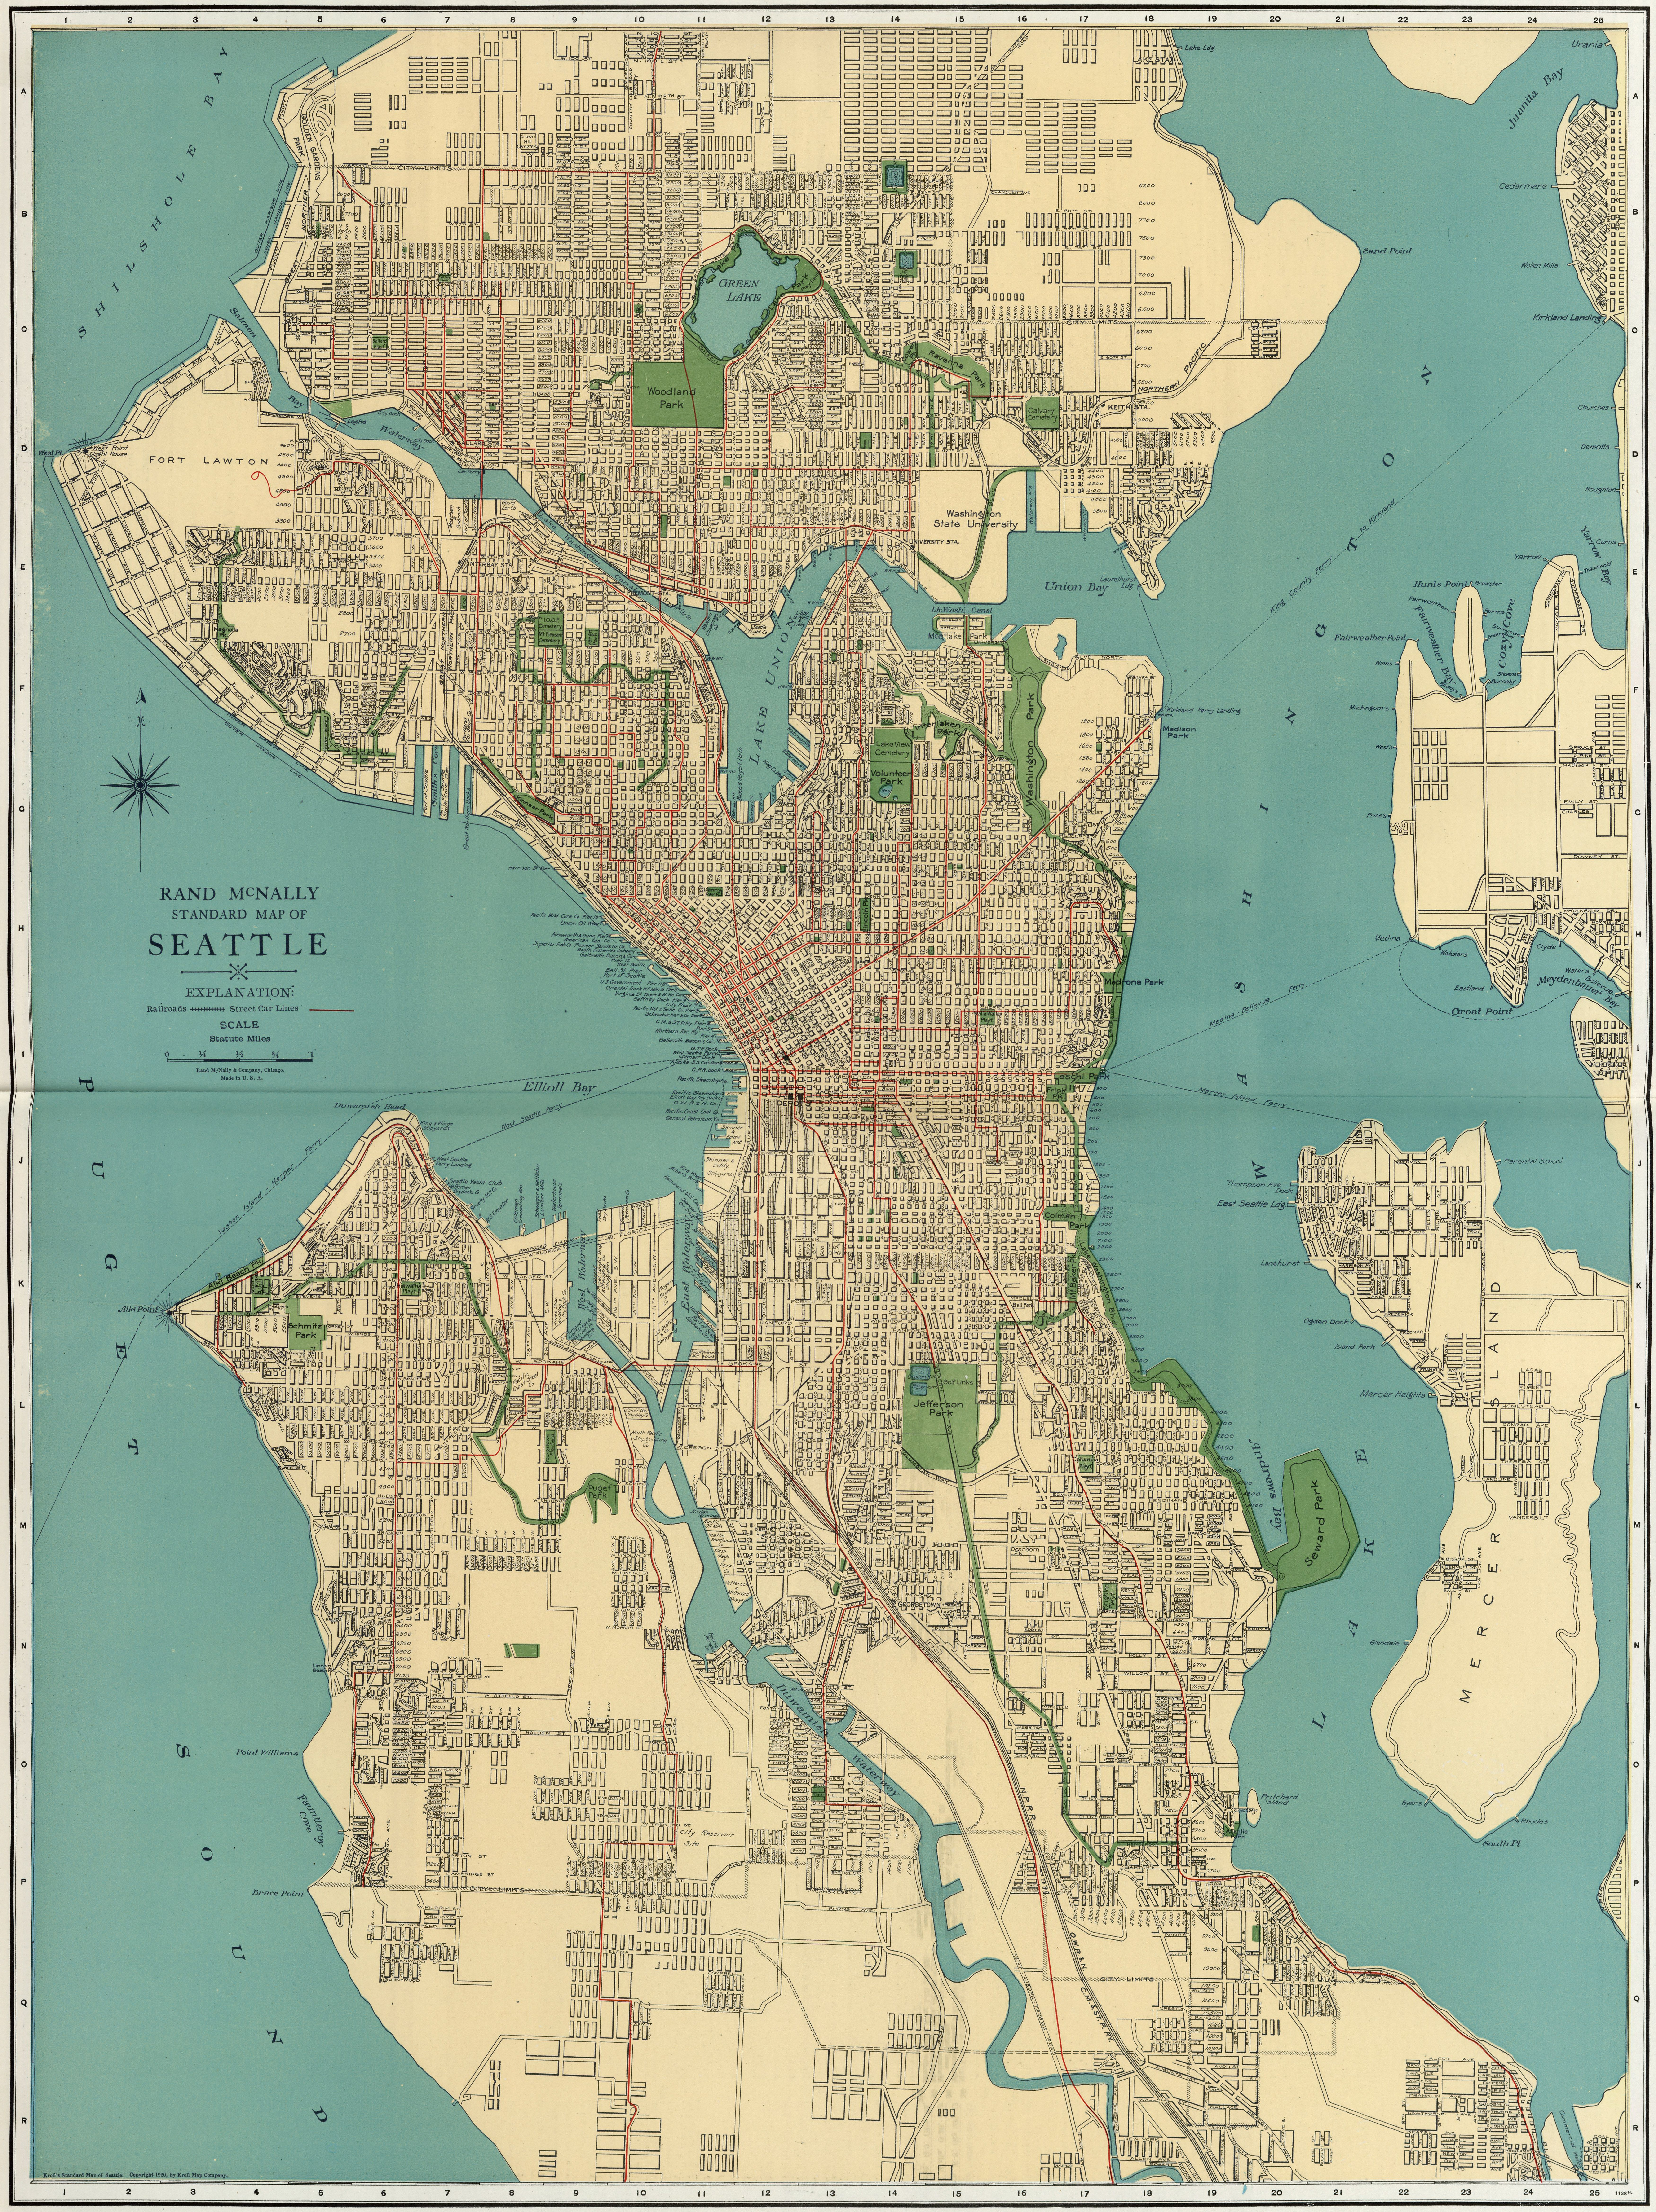 Rand mcnally 1924 seattle map want this Maps Cities Ive